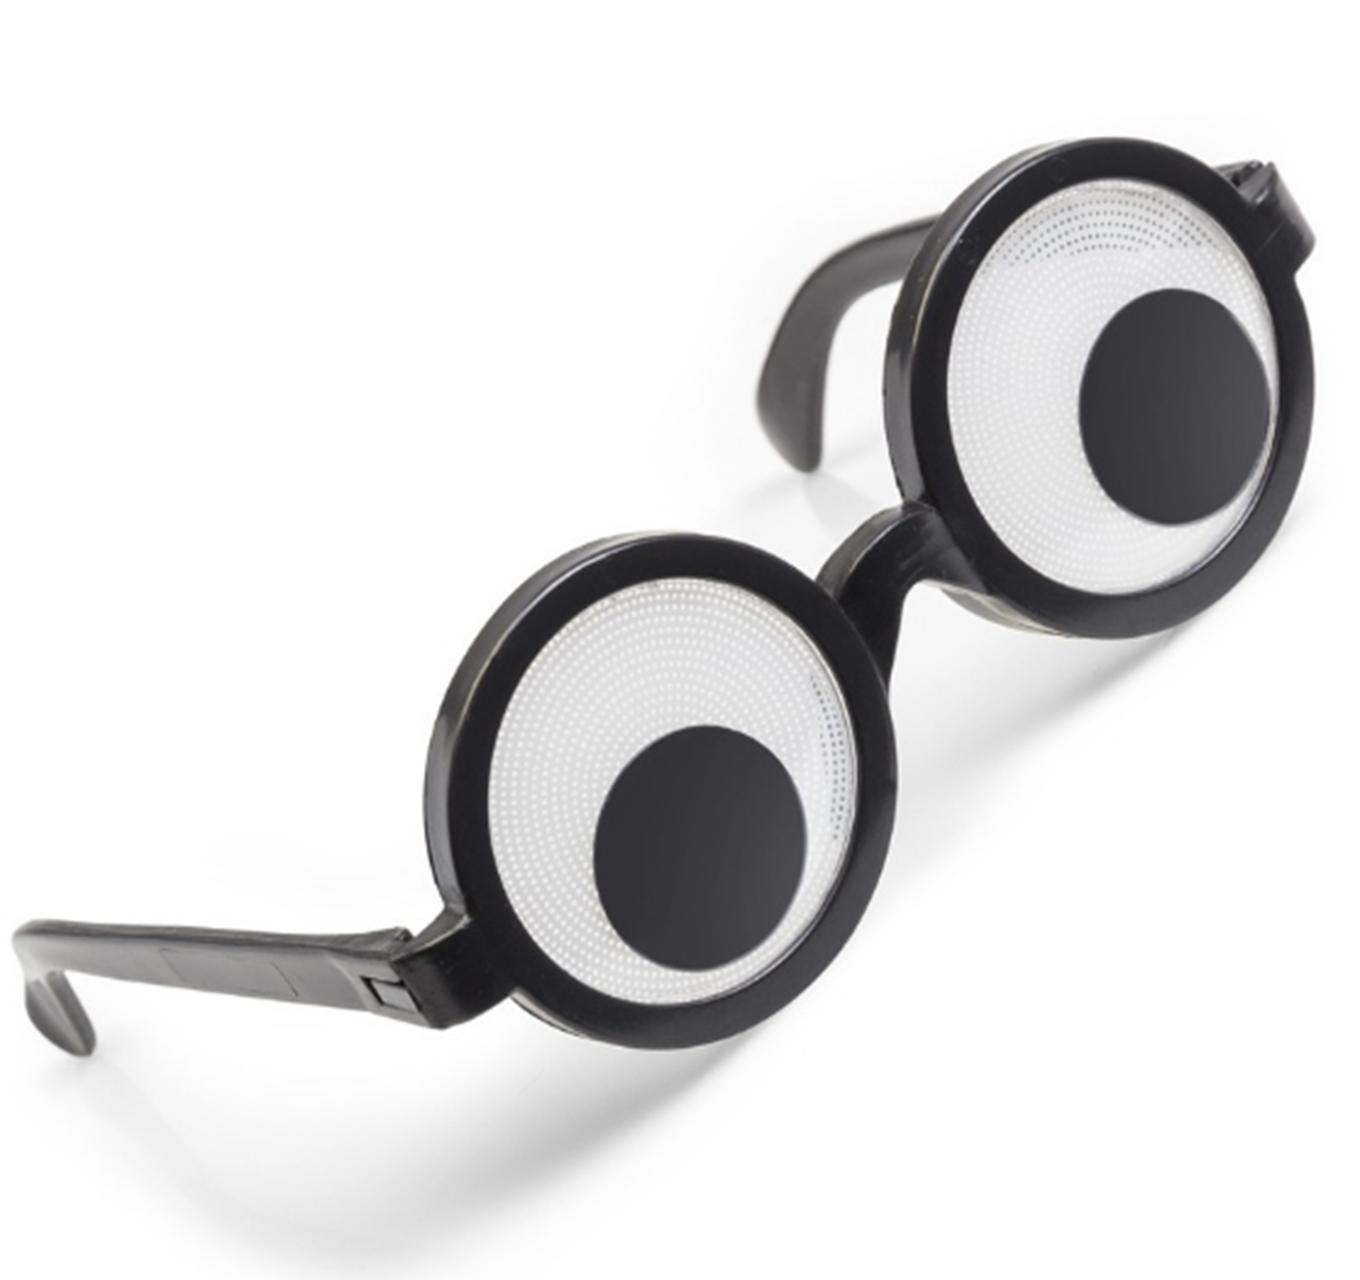 tobar googly eyes glasses activity craft tincknell country store